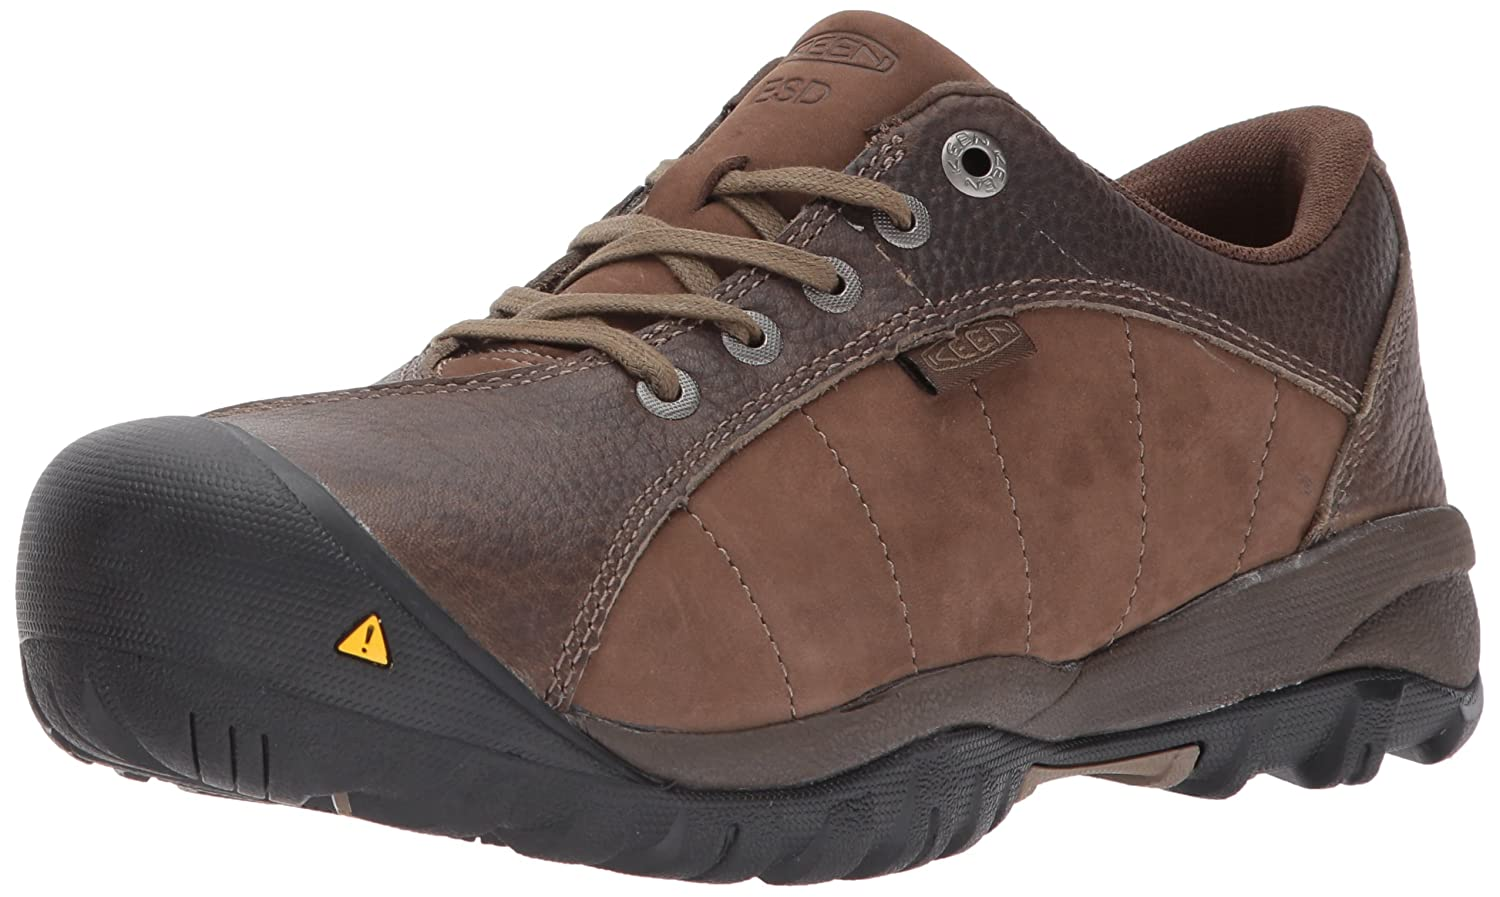 a73cf7f11fa8 Amazon.com  KEEN Utility Women s Santa FE at ESD Industrial   Construction  Shoe  Shoes